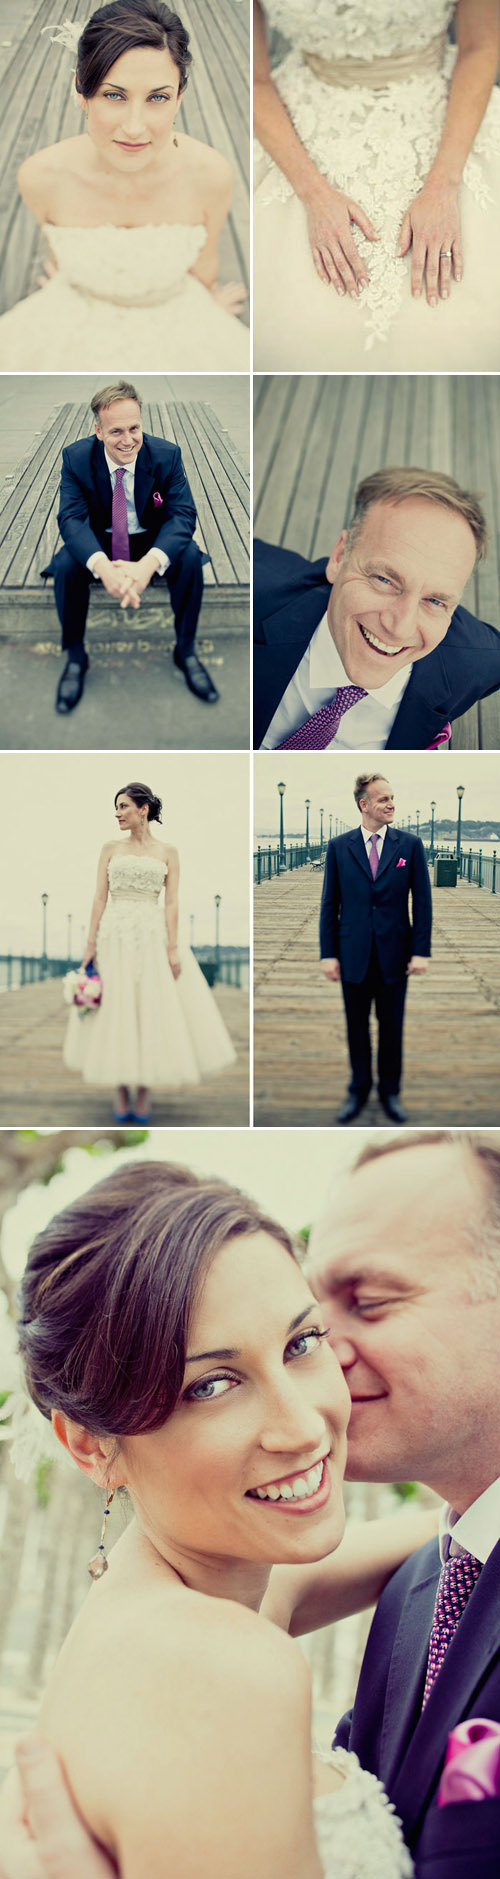 Pretty San Francisco wedding at City Hall romantic photoshoot, photos by Paco and Betty